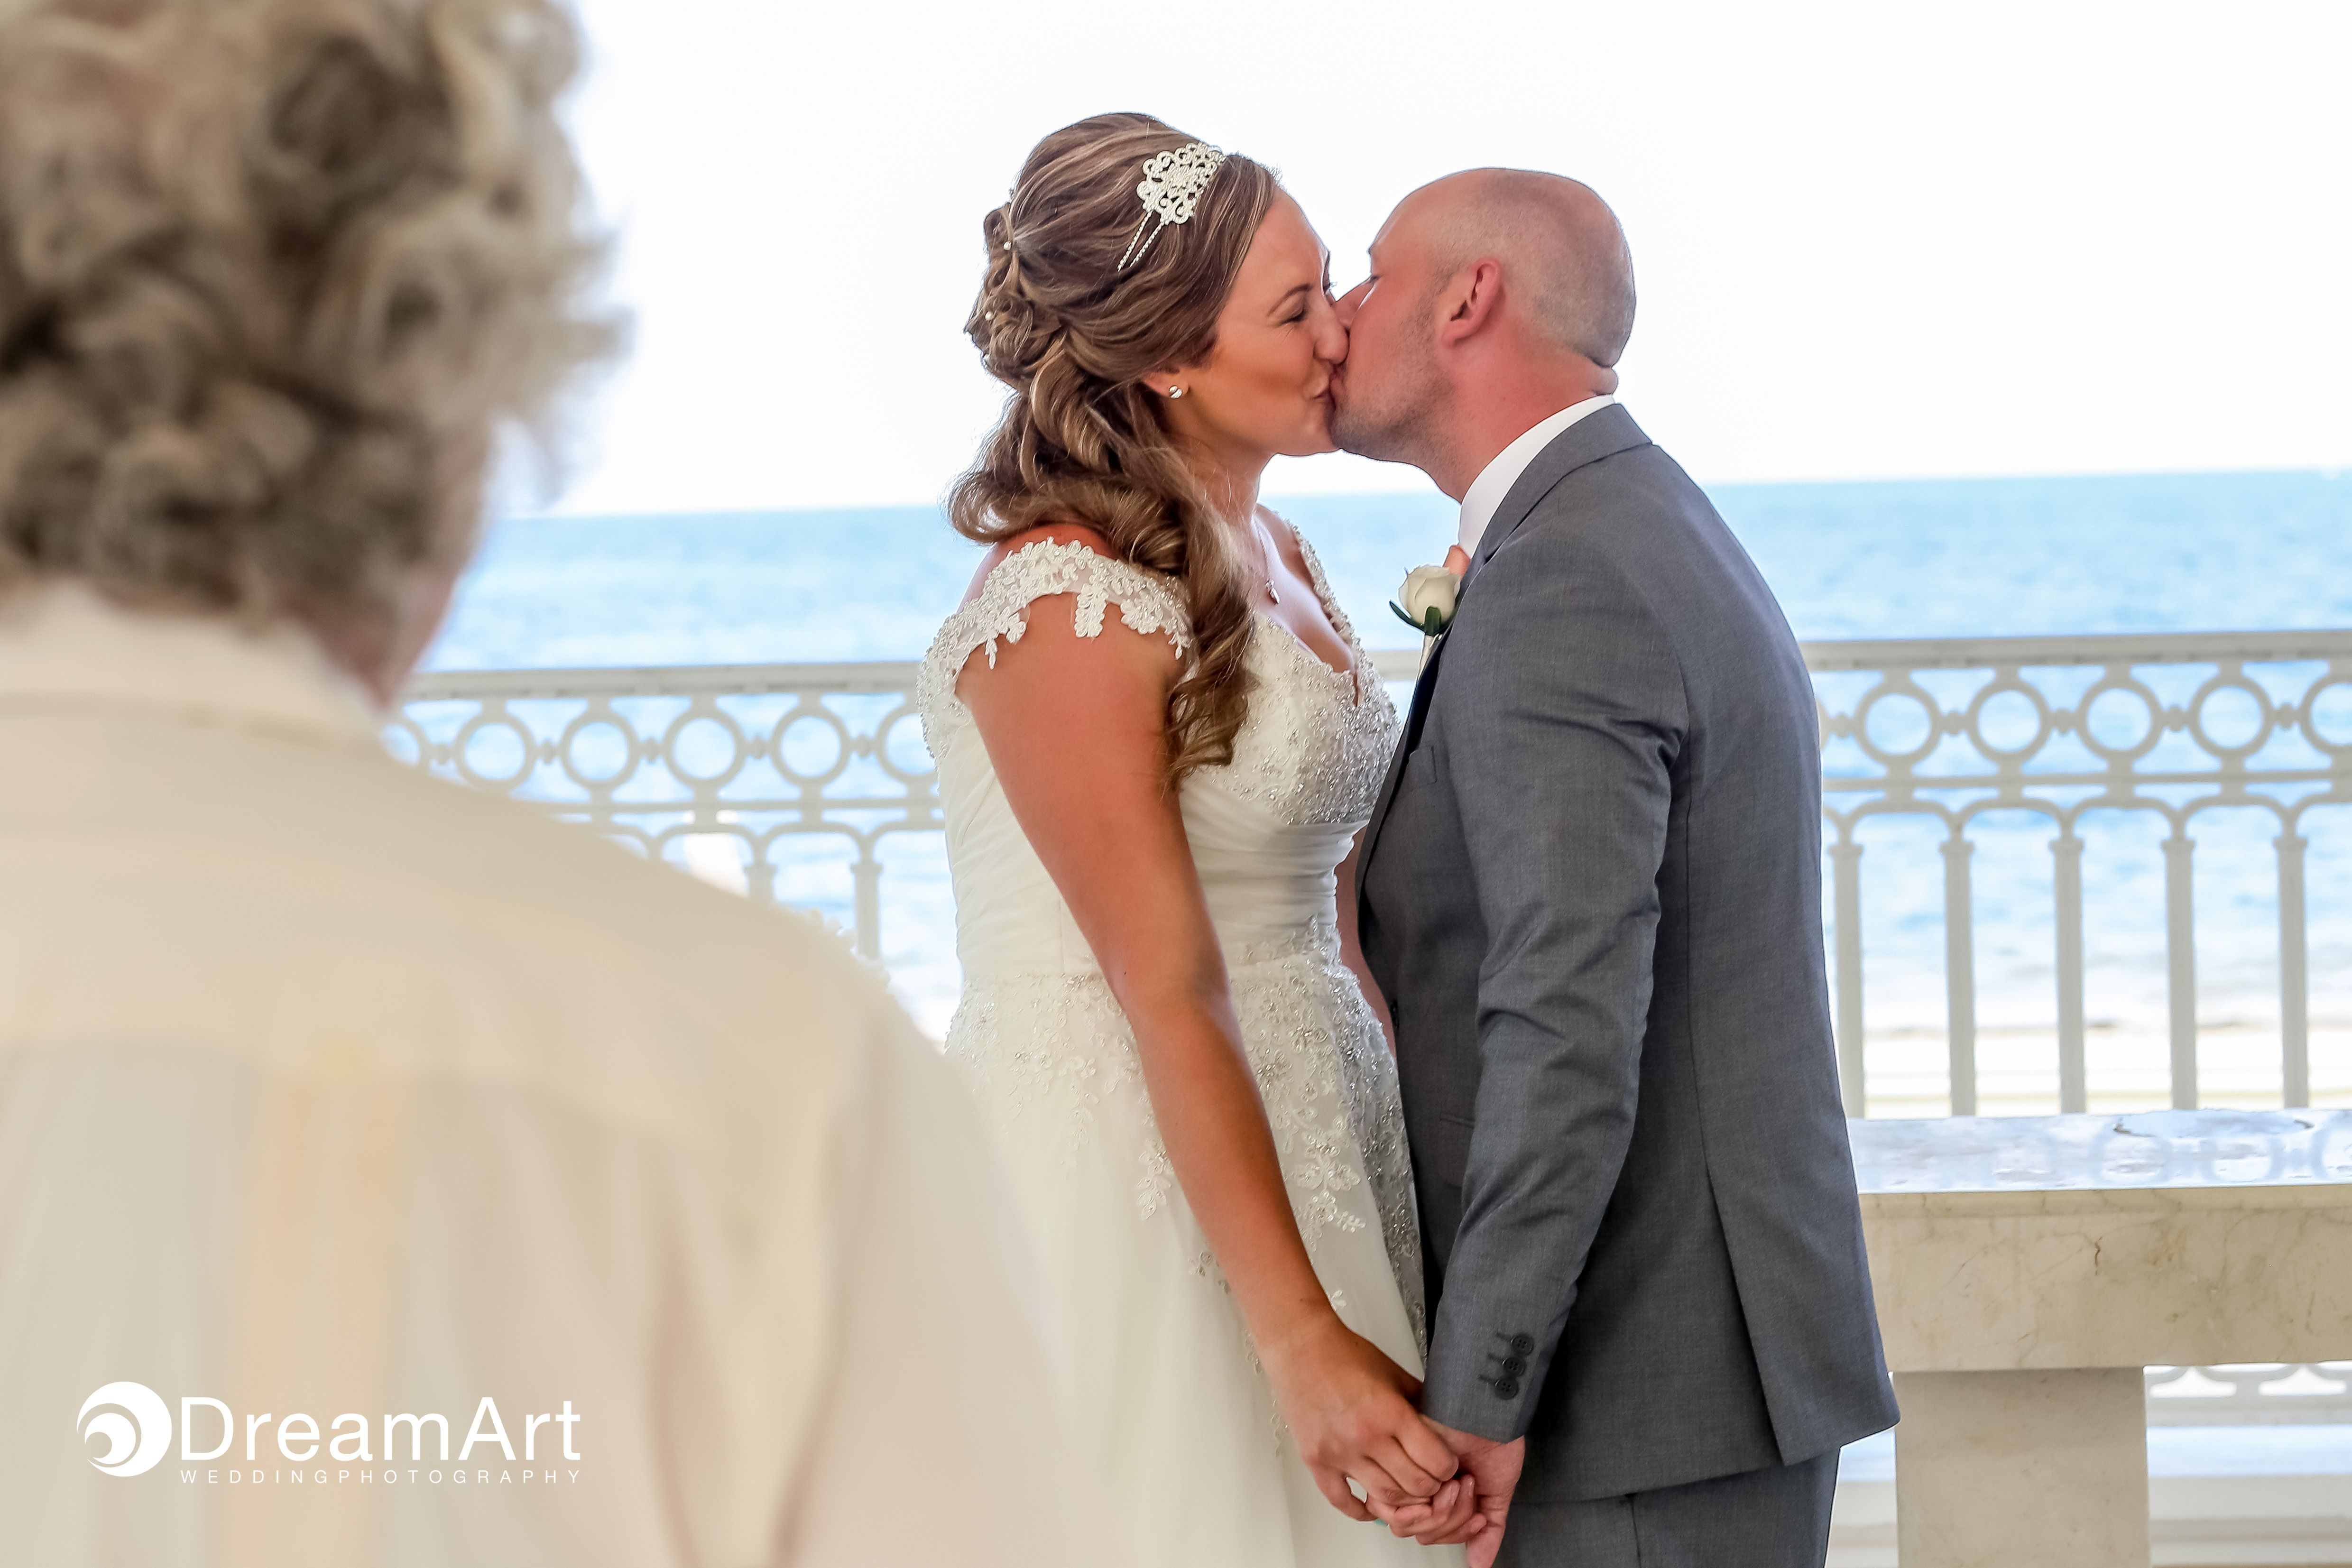 A Bride And Groom Share Their First Kiss During A Wedding Ceremony